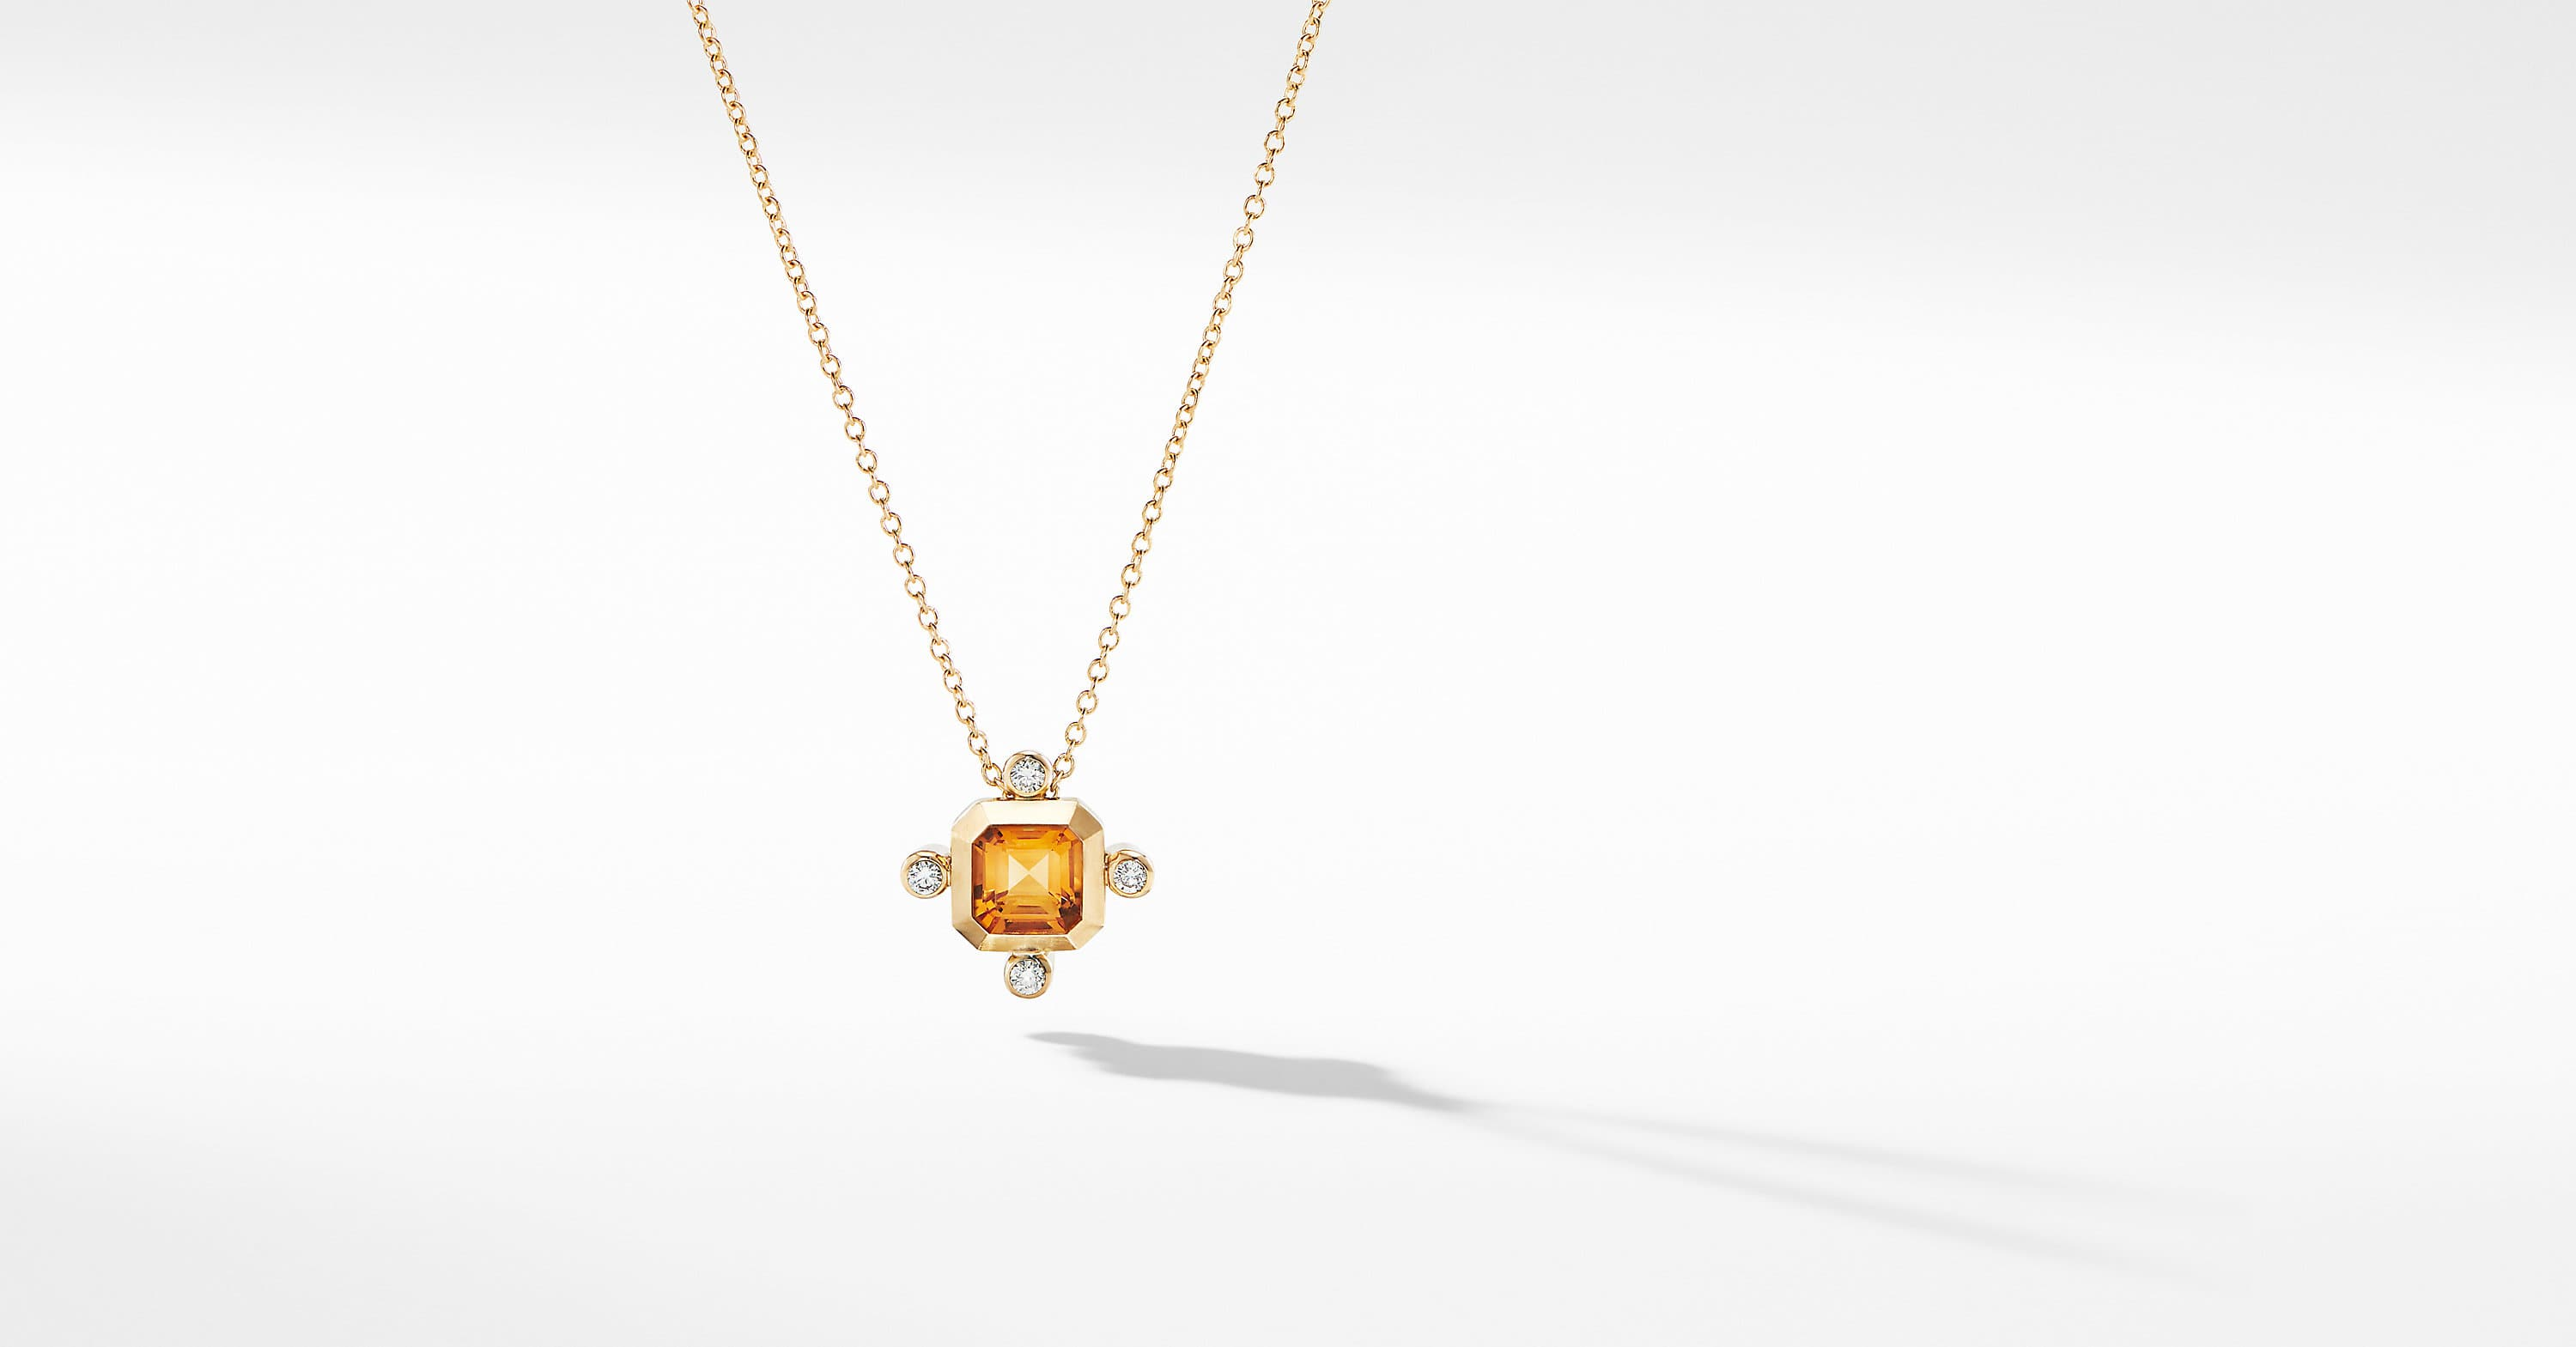 Novella Pendant Necklace in 18K Yellow Gold with Diamonds